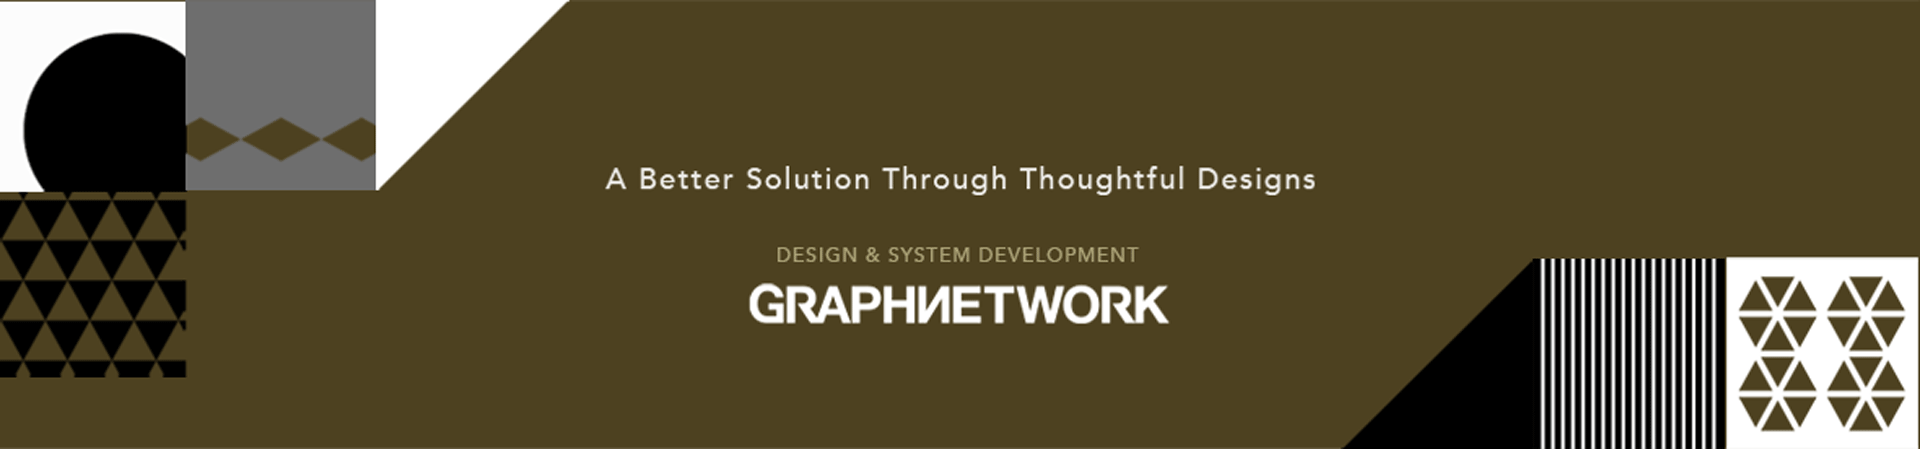 A Better Solution Through Thoughtful Designs Design and System development GRAPHNETWORK